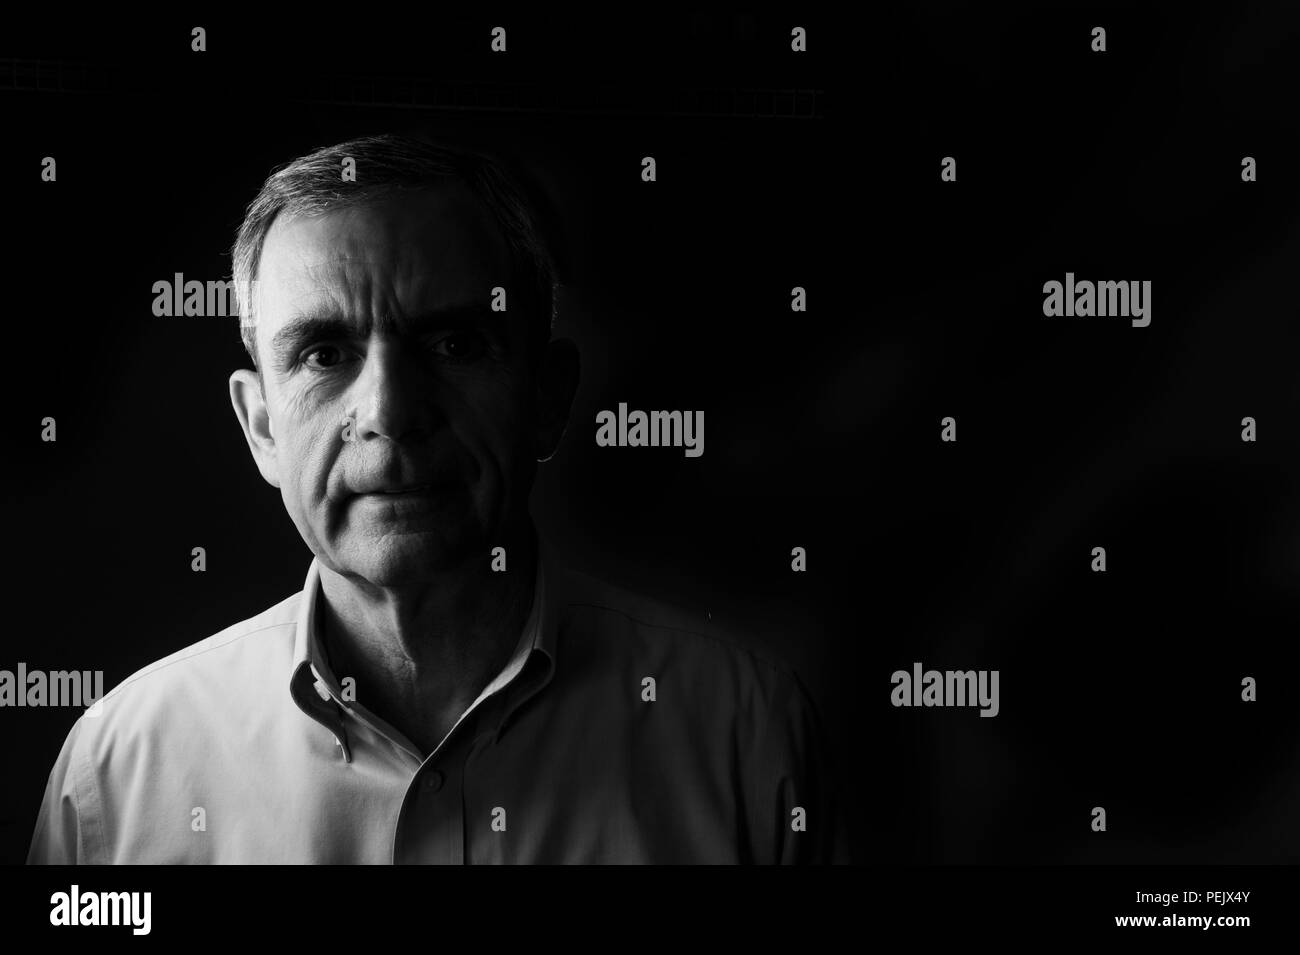 Daniel Hughes Black and White Stock Photos & Images - Alamy